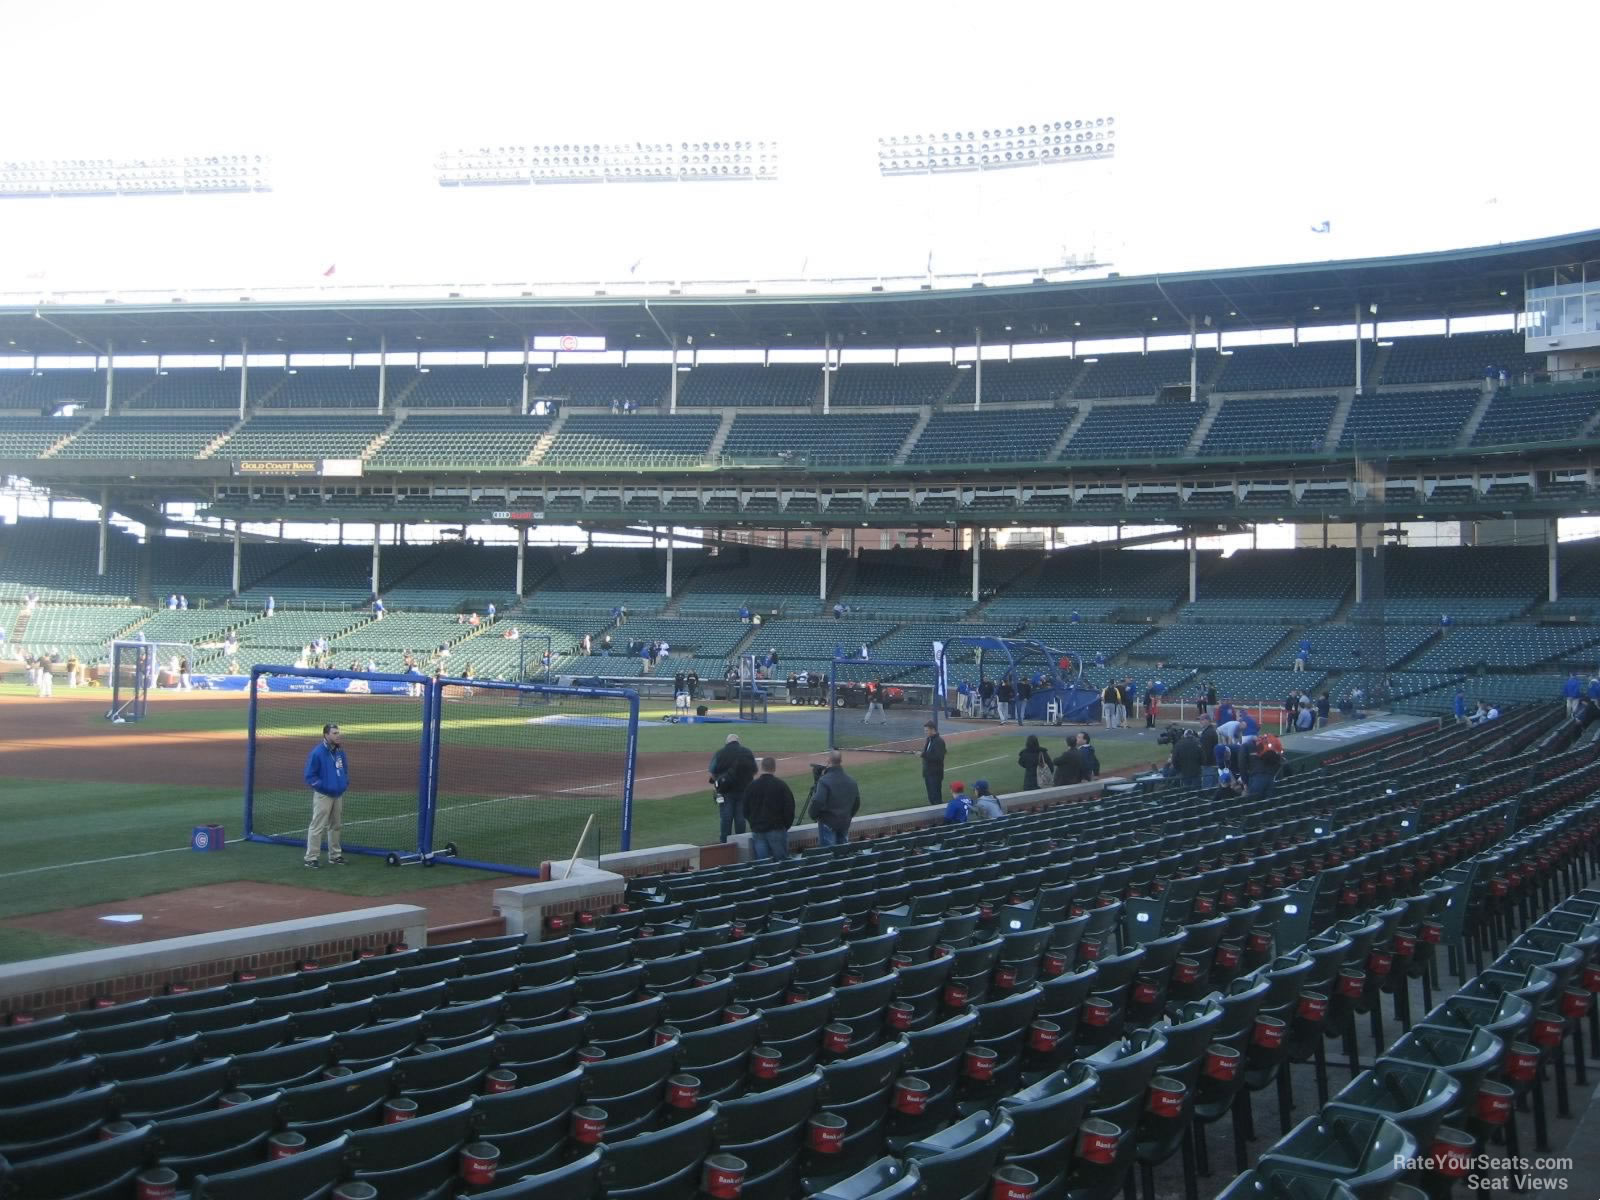 Wrigley Field Section 7 - Chicago Cubs - RateYourSeats.com